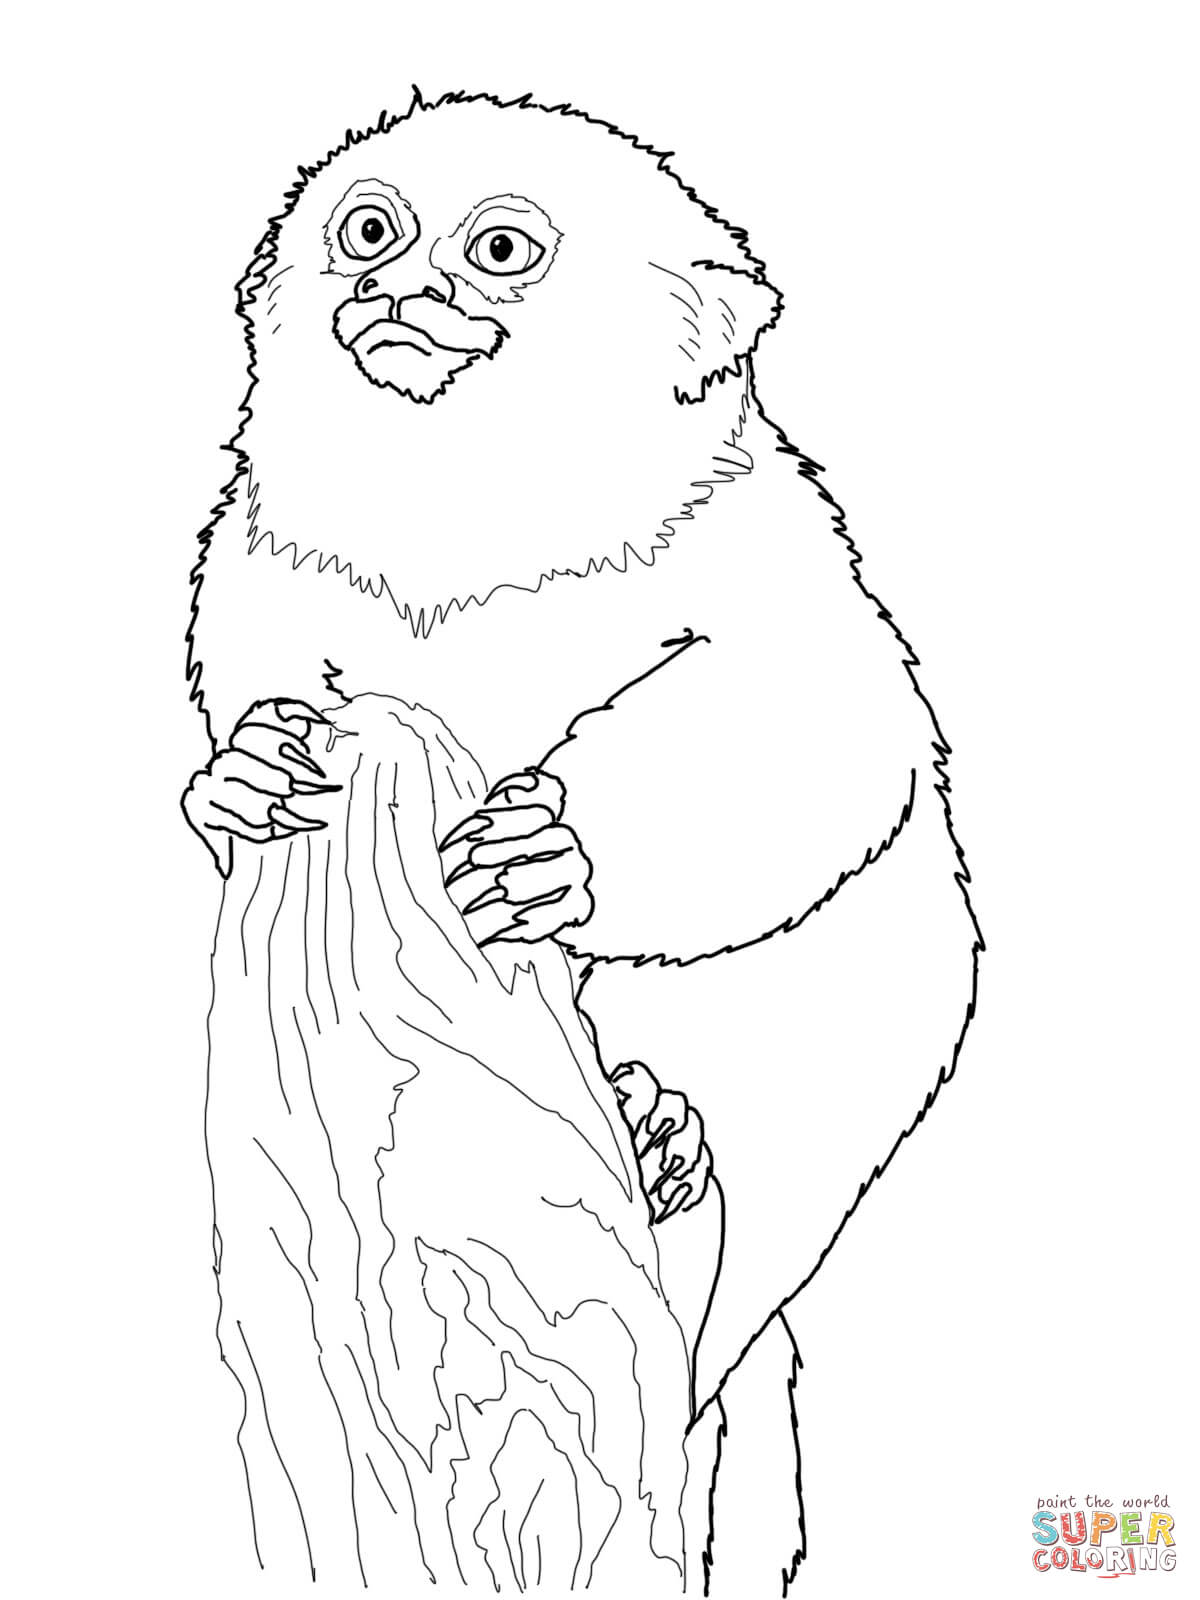 Howler Monkey Drawing at GetDrawings